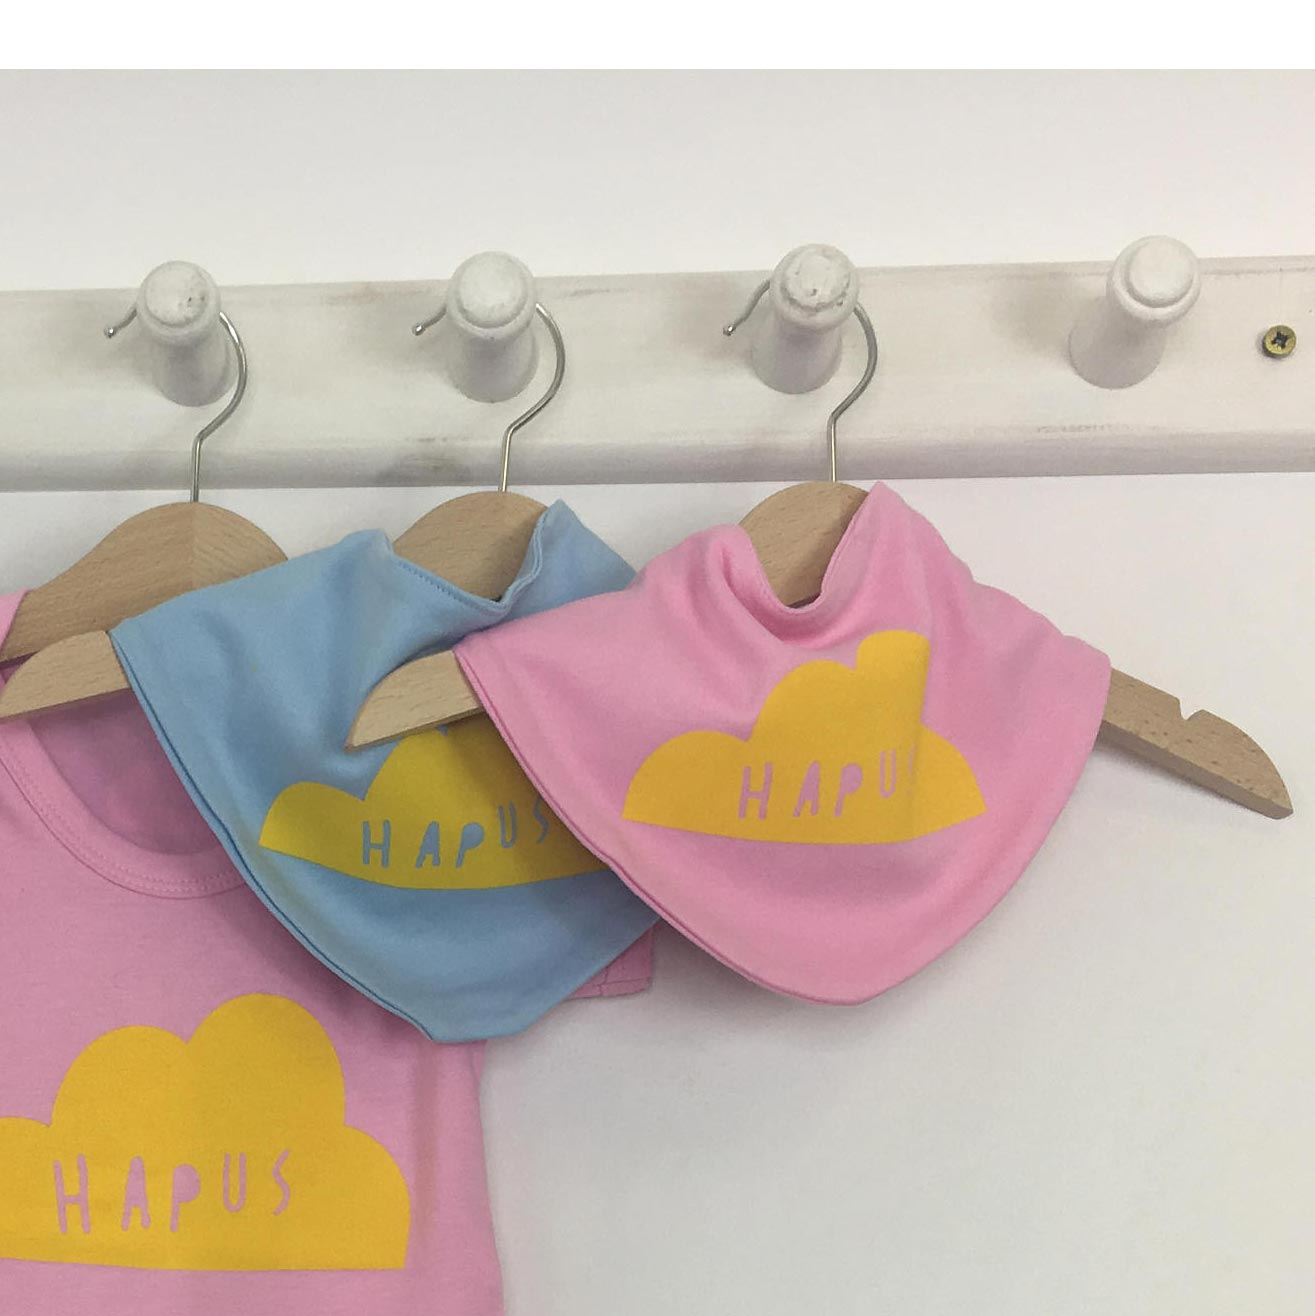 Baby Bib - Welsh - Hapus / Bychan-The Welsh Gift Shop